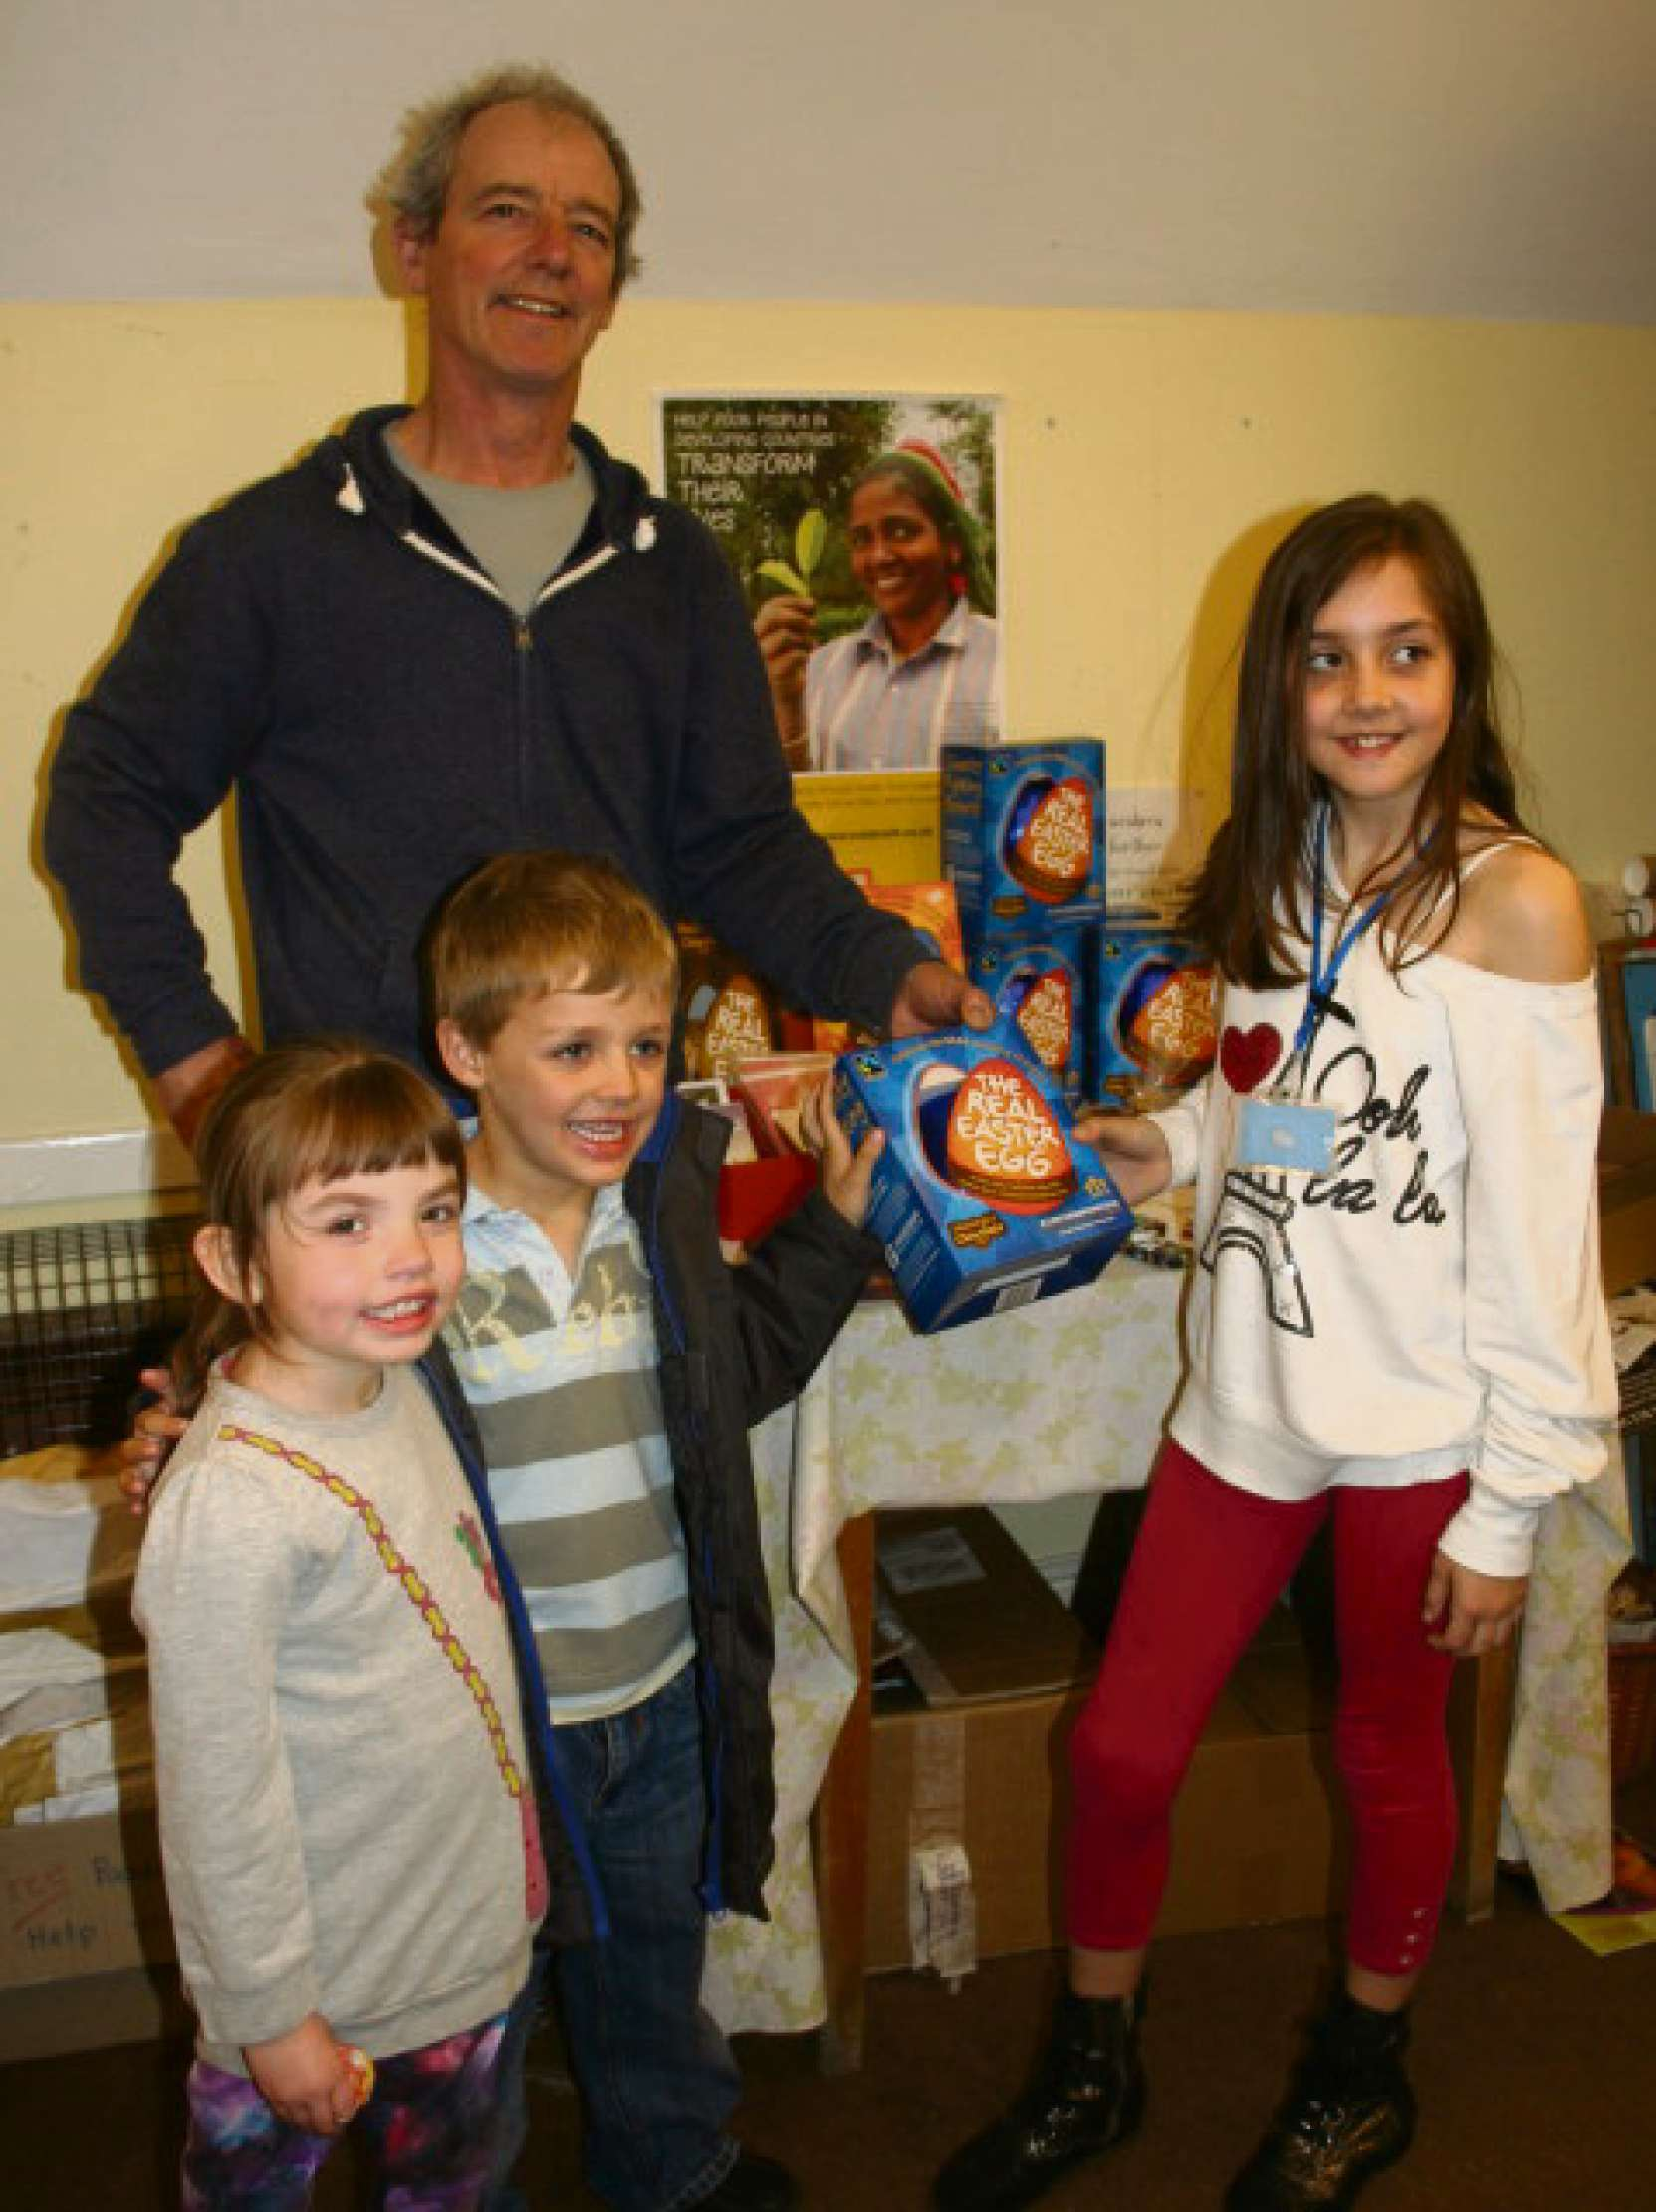 Michael Knight is seen showing a 'Real Easter Egg' to Danielle Jones (aged10), Kai Jones (aged 5) and Leah Davies (aged 5).